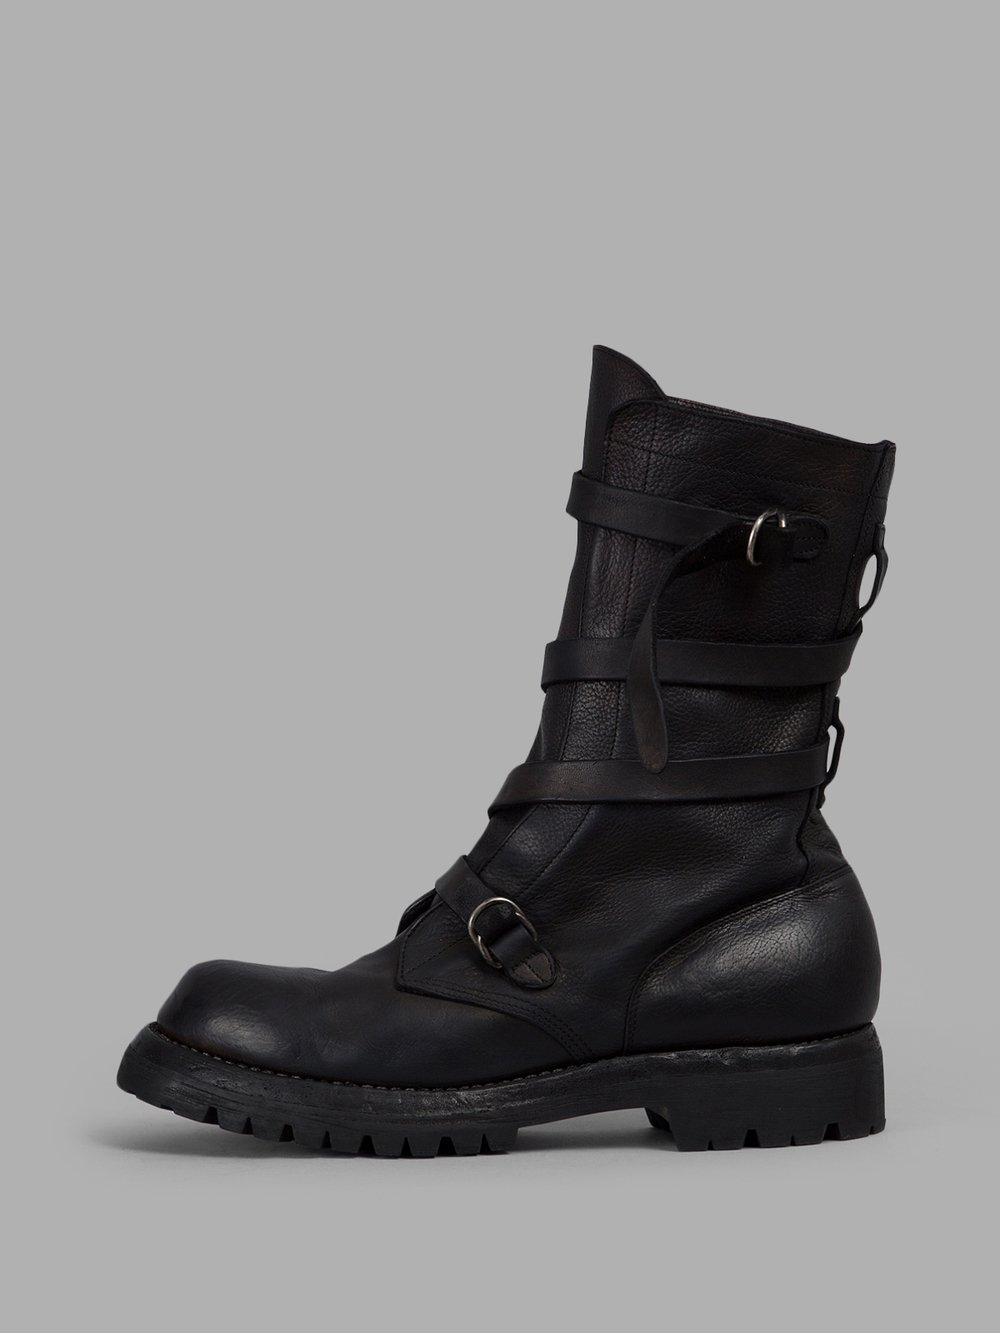 5308cgvcalf black uo do 3456